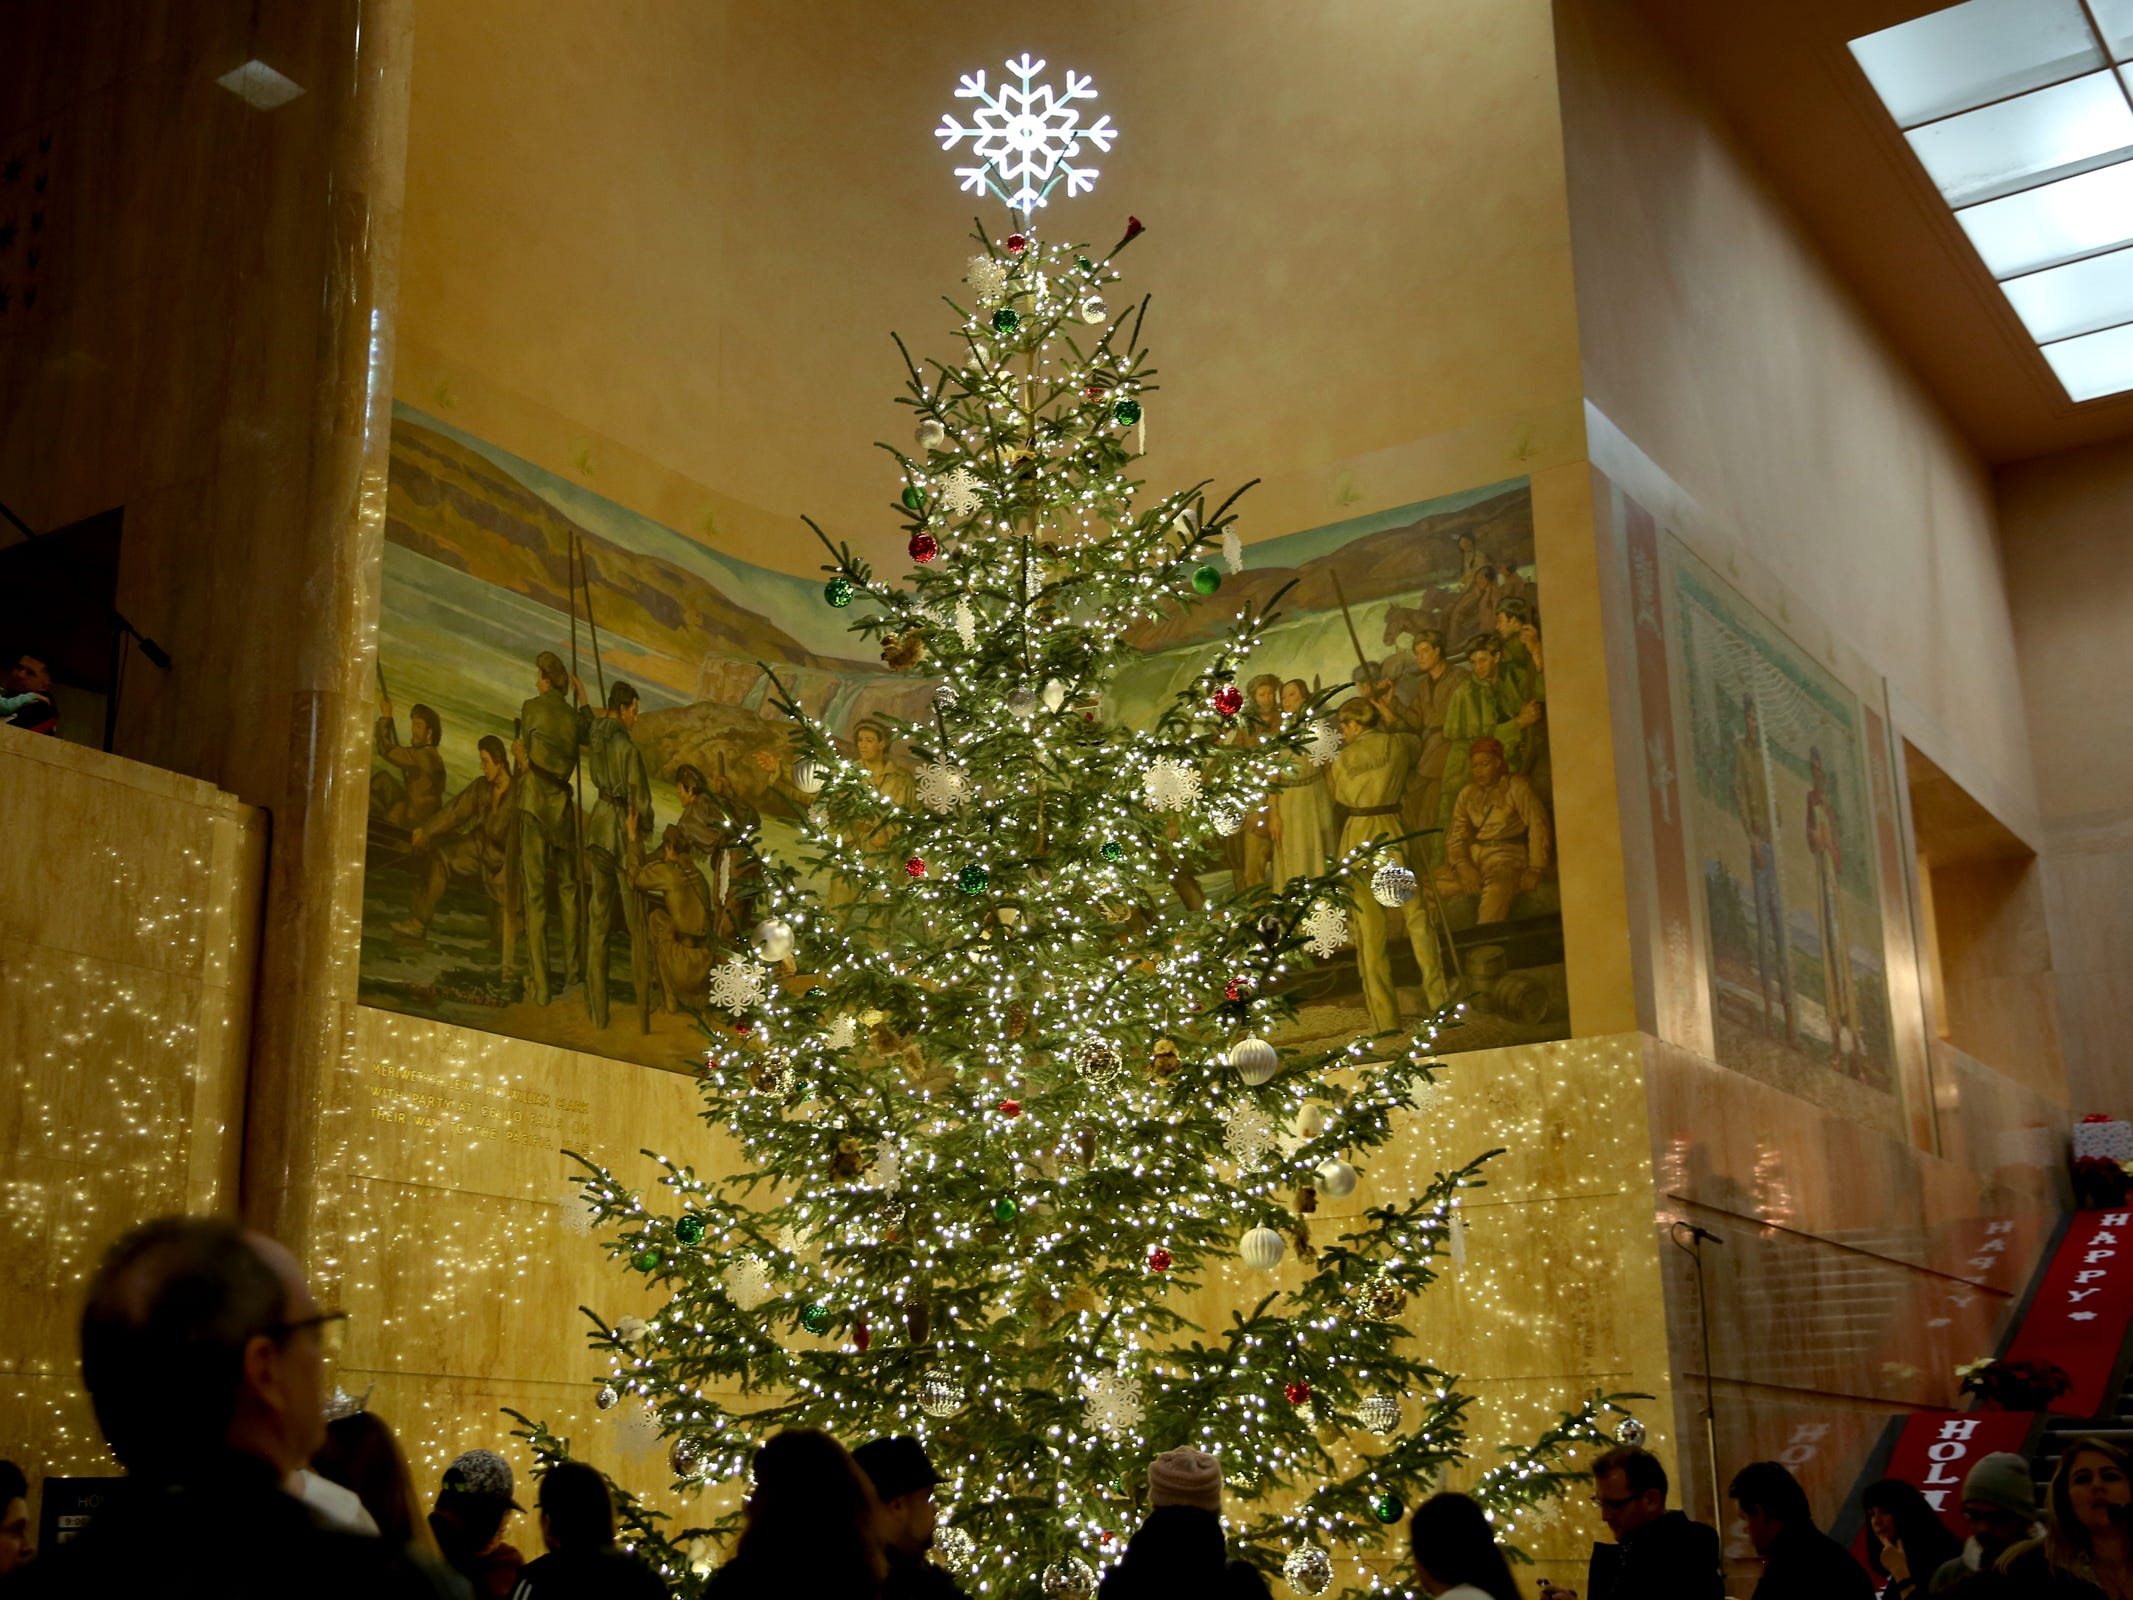 The Holiday Tree Lighting Celebration at the Oregon State Capitol in Salem on Tuesday, Nov. 27, 2018.